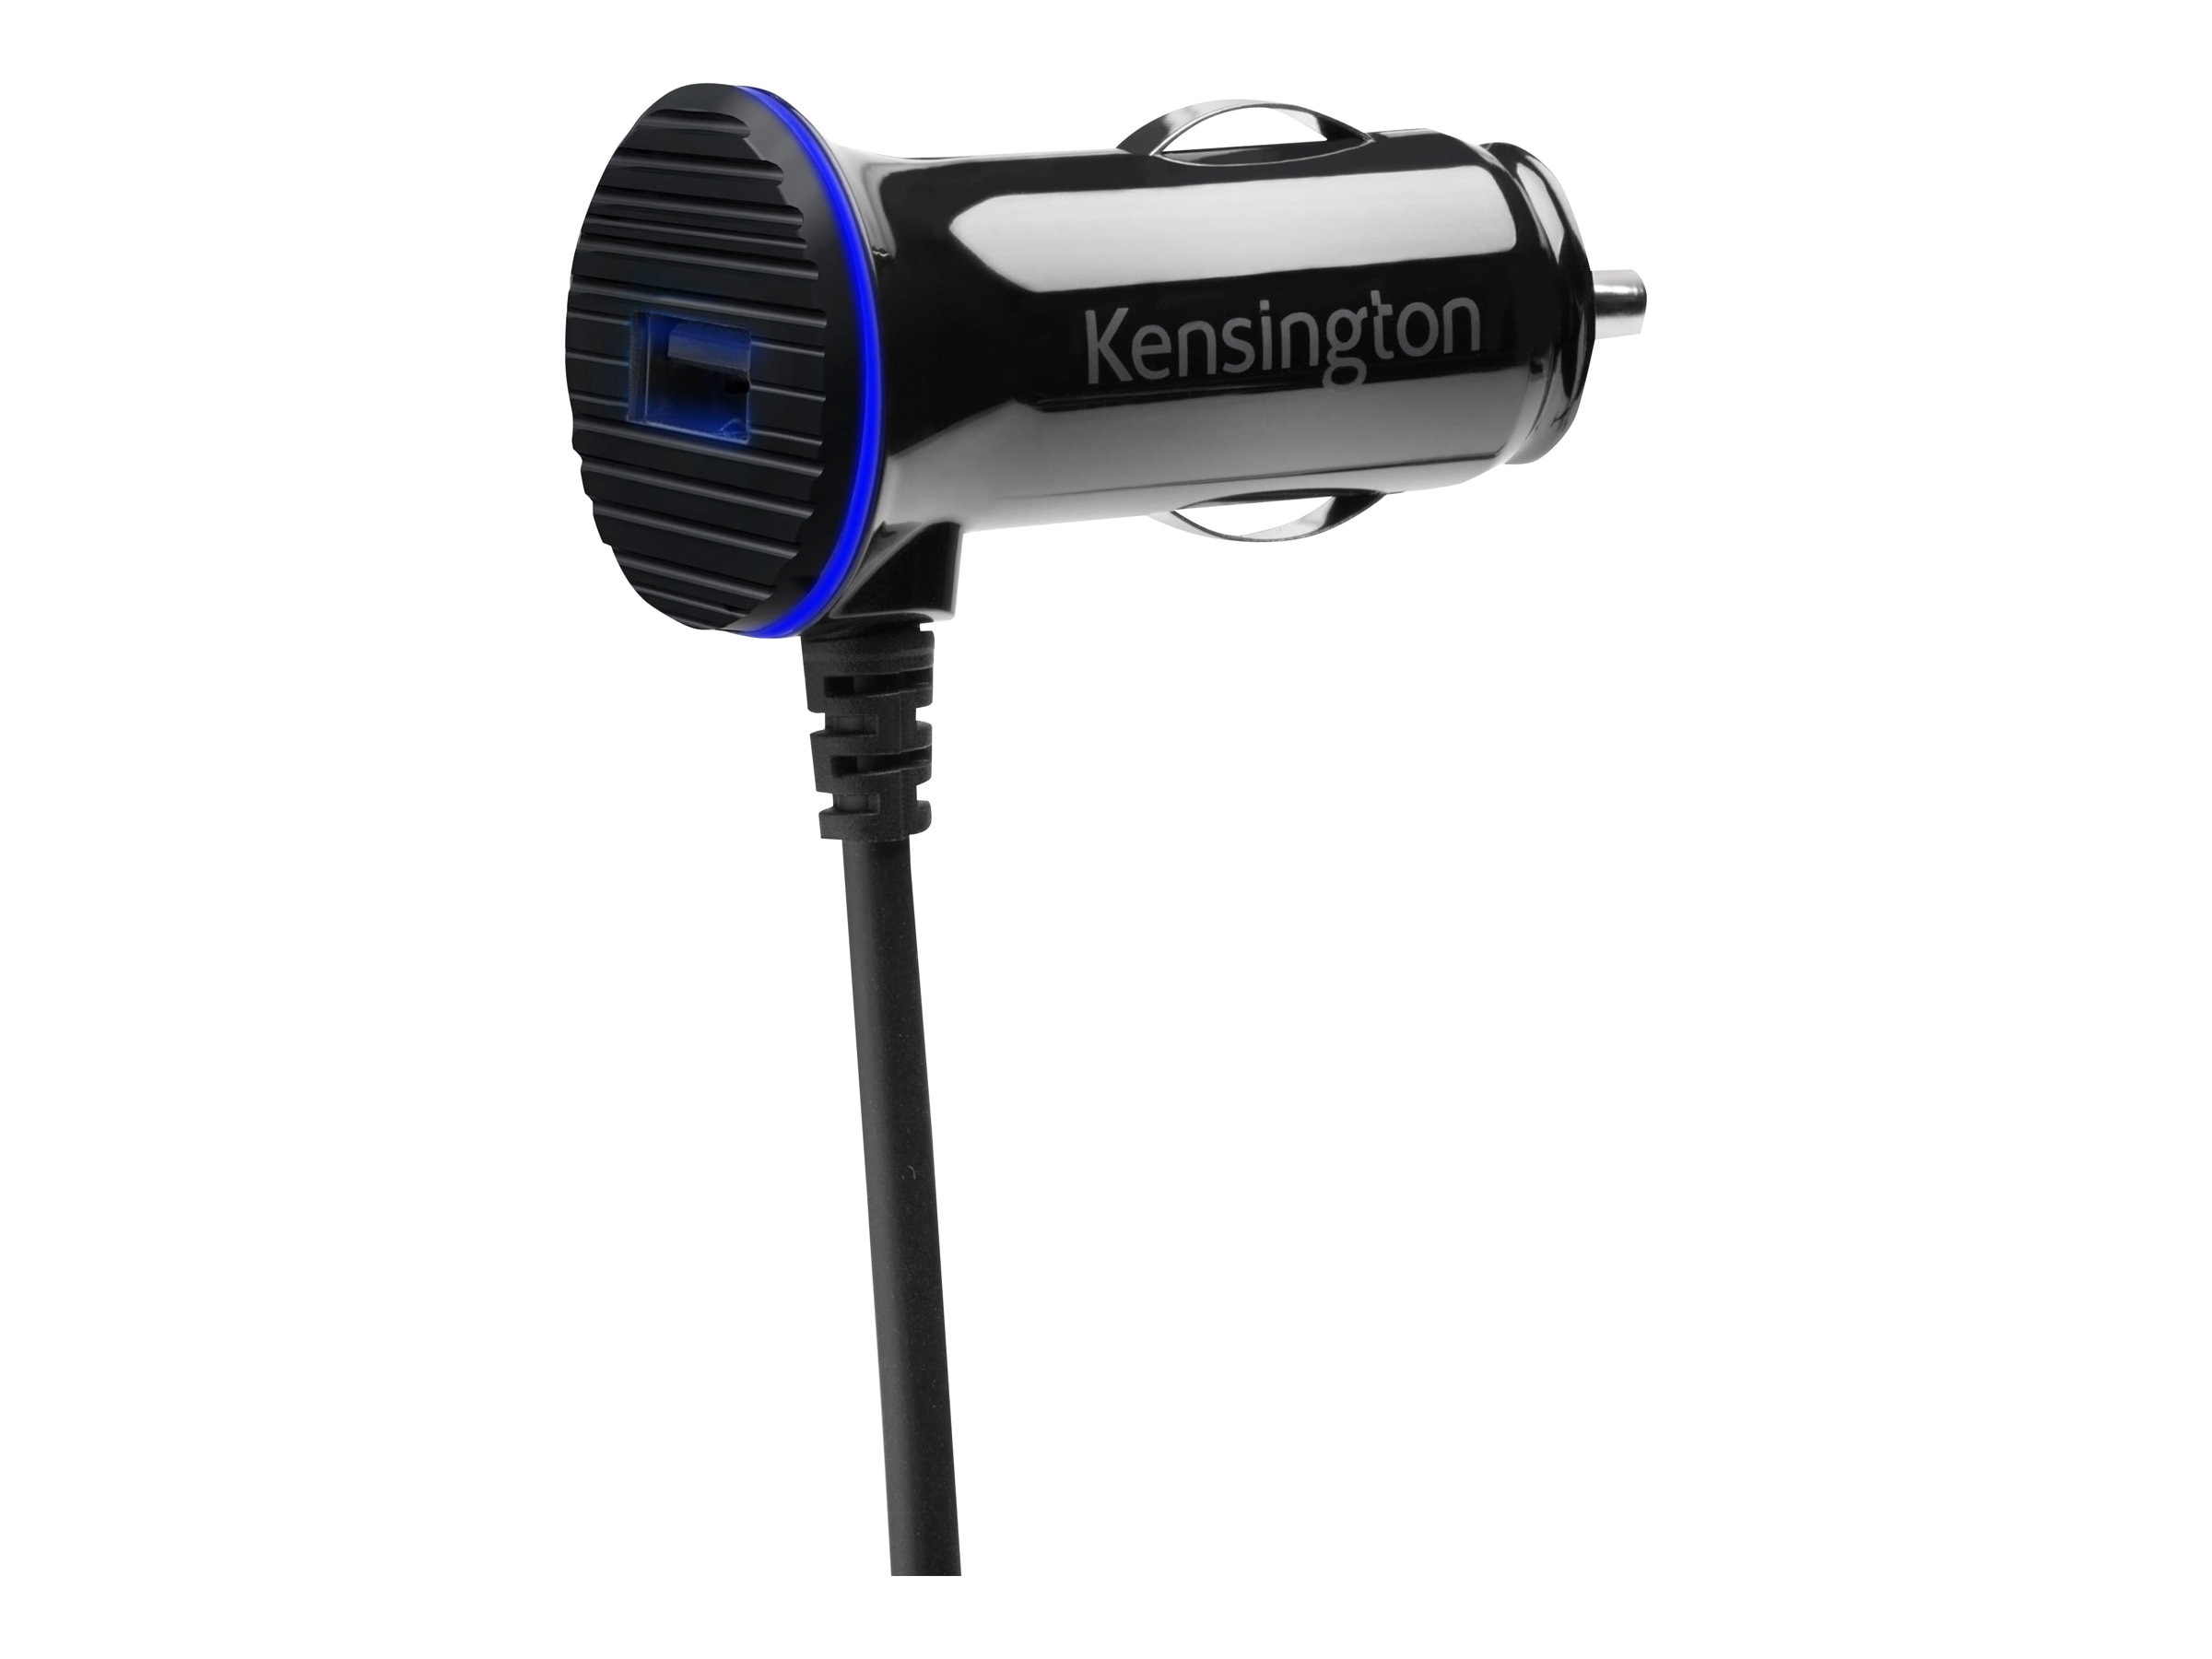 Kensington PowerBolt 3.4 Dual Port Fast Charge Car Charger, Lightning Connector